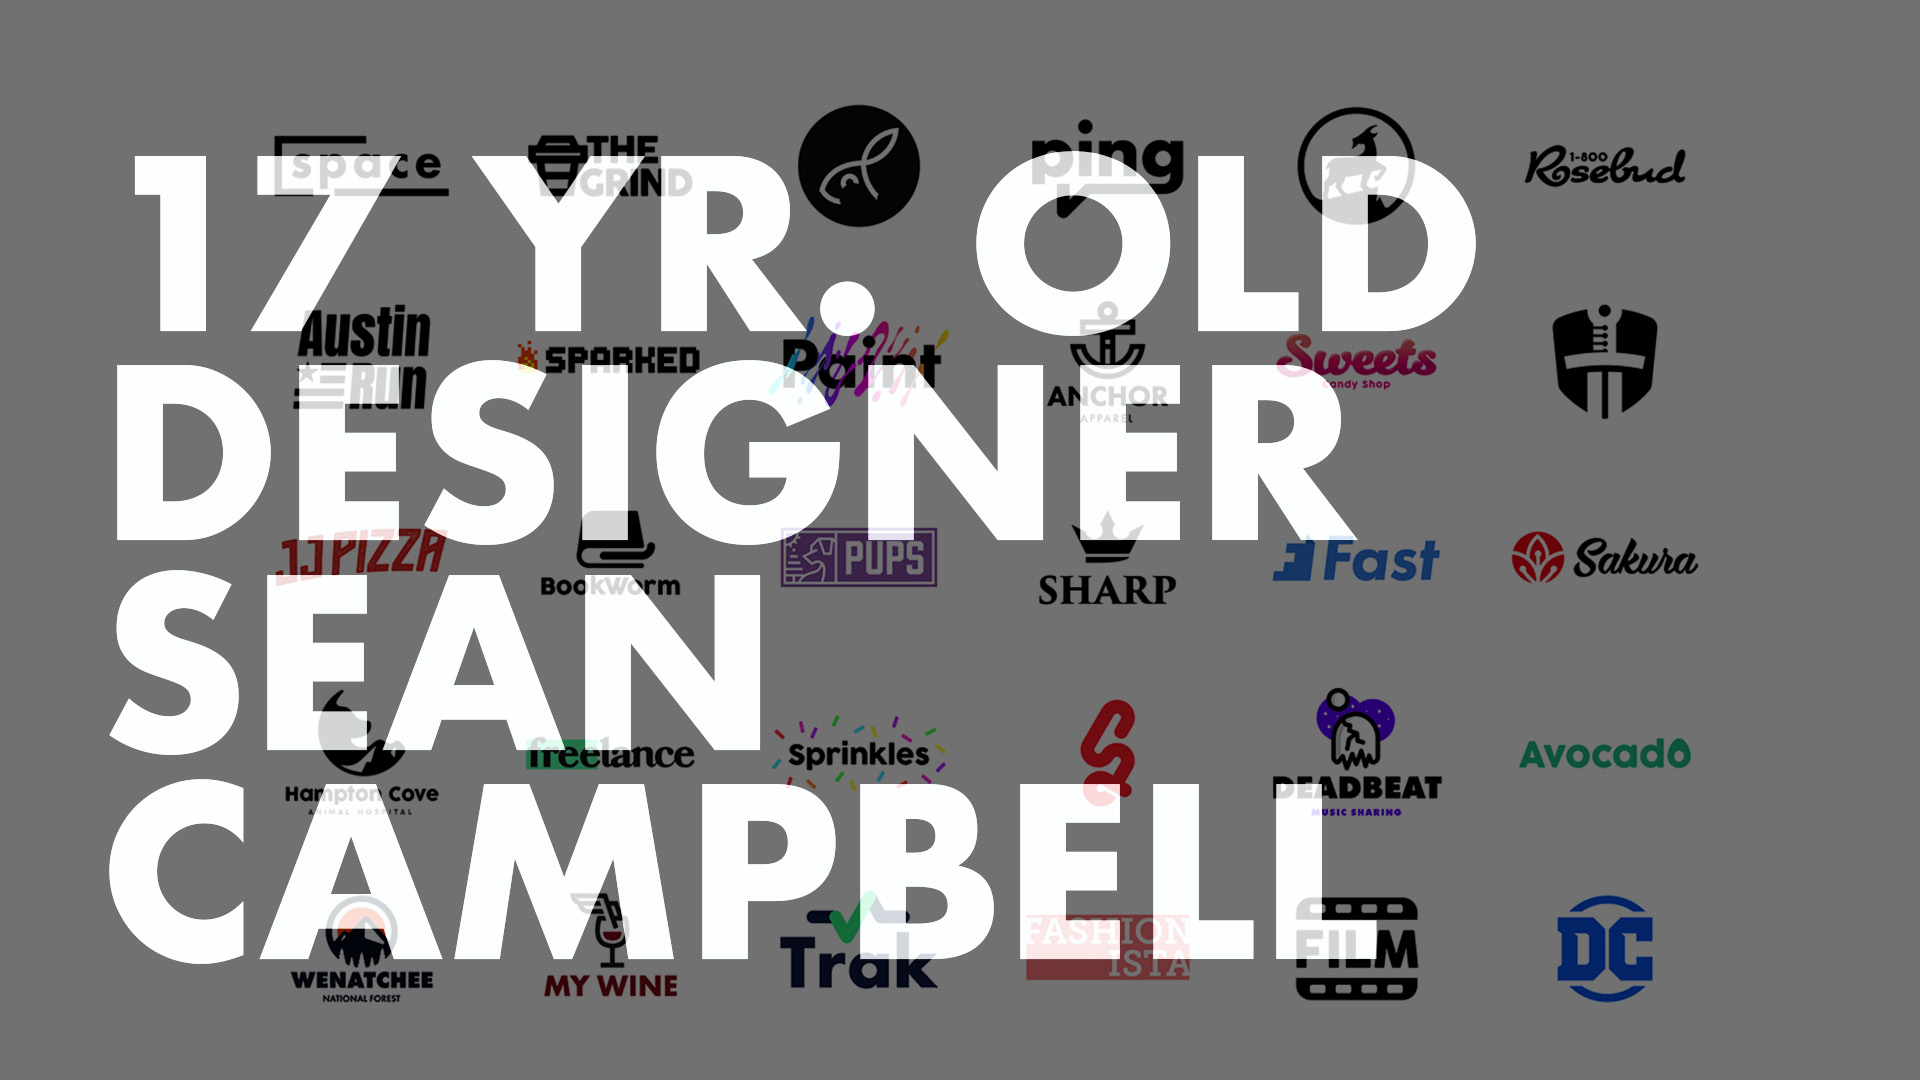 Graphic Designer Sean Campbell